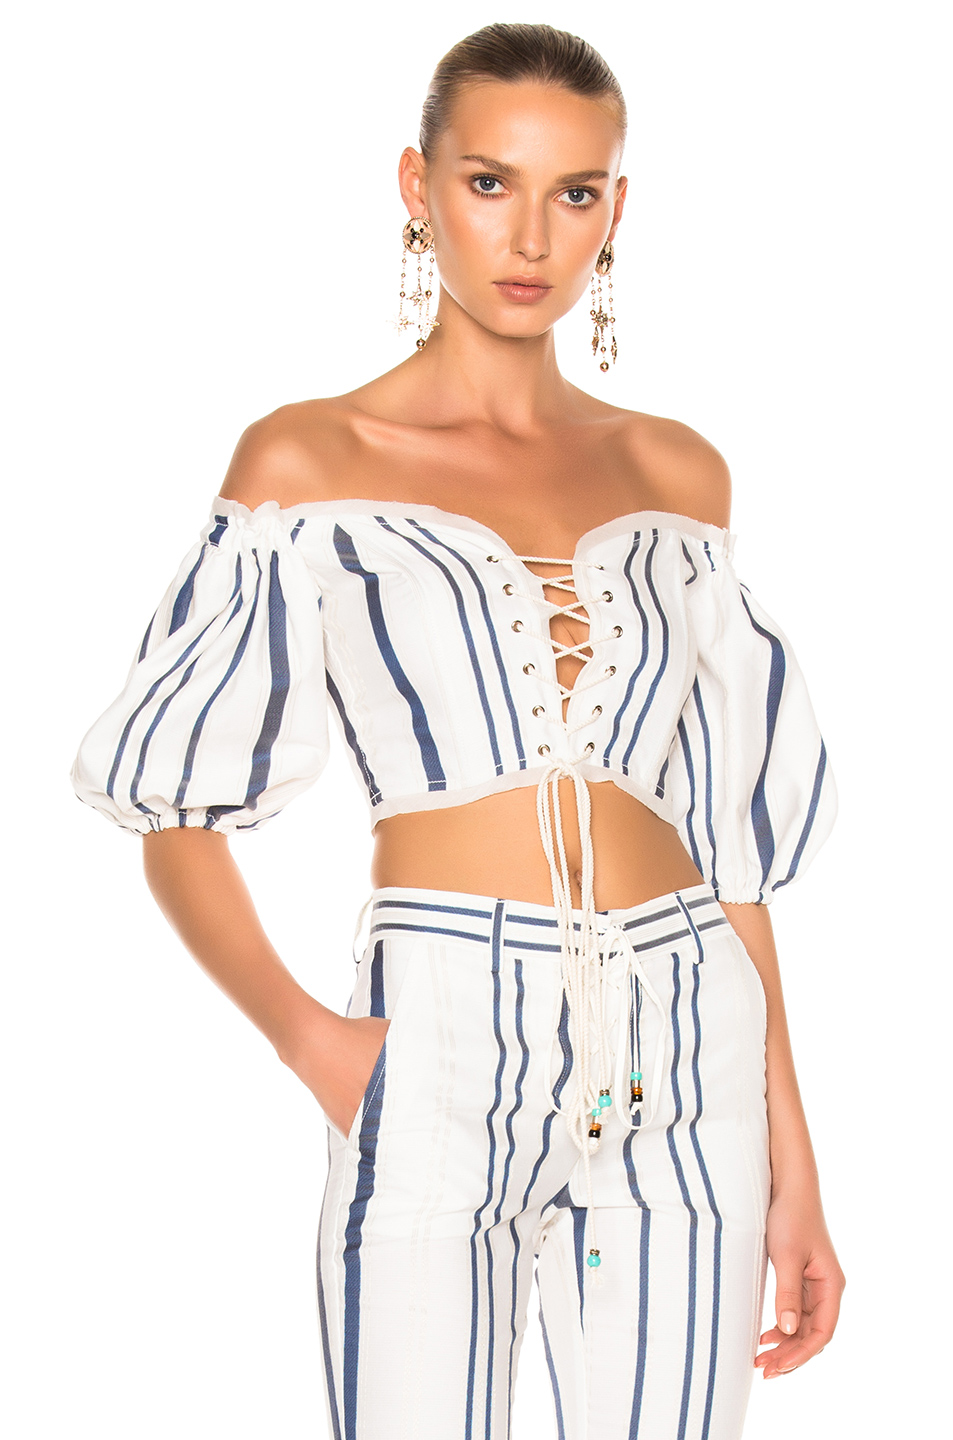 Roberto Cavalli Lace Up Cropped Top in Blue,Neutrals,Stripes